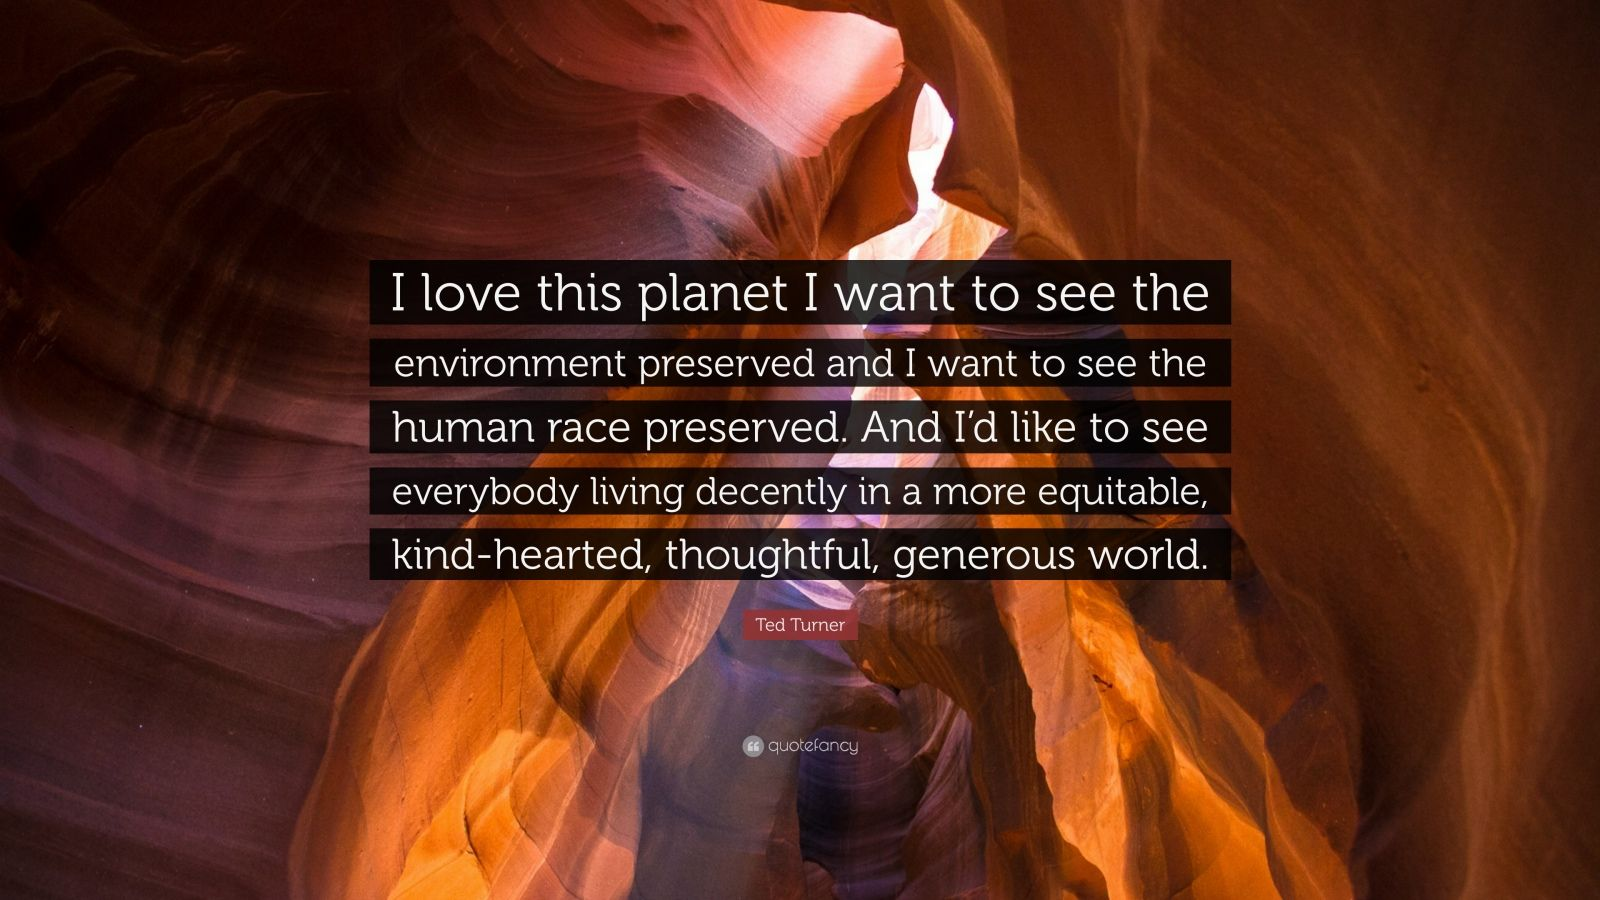 """Ted Turner Quote: """"I love this planet I want to see the environment preserved and I want to see the human race preserved. And I'd like to see everybody living decently in a more equitable, kind-hearted, thoughtful, generous world."""""""